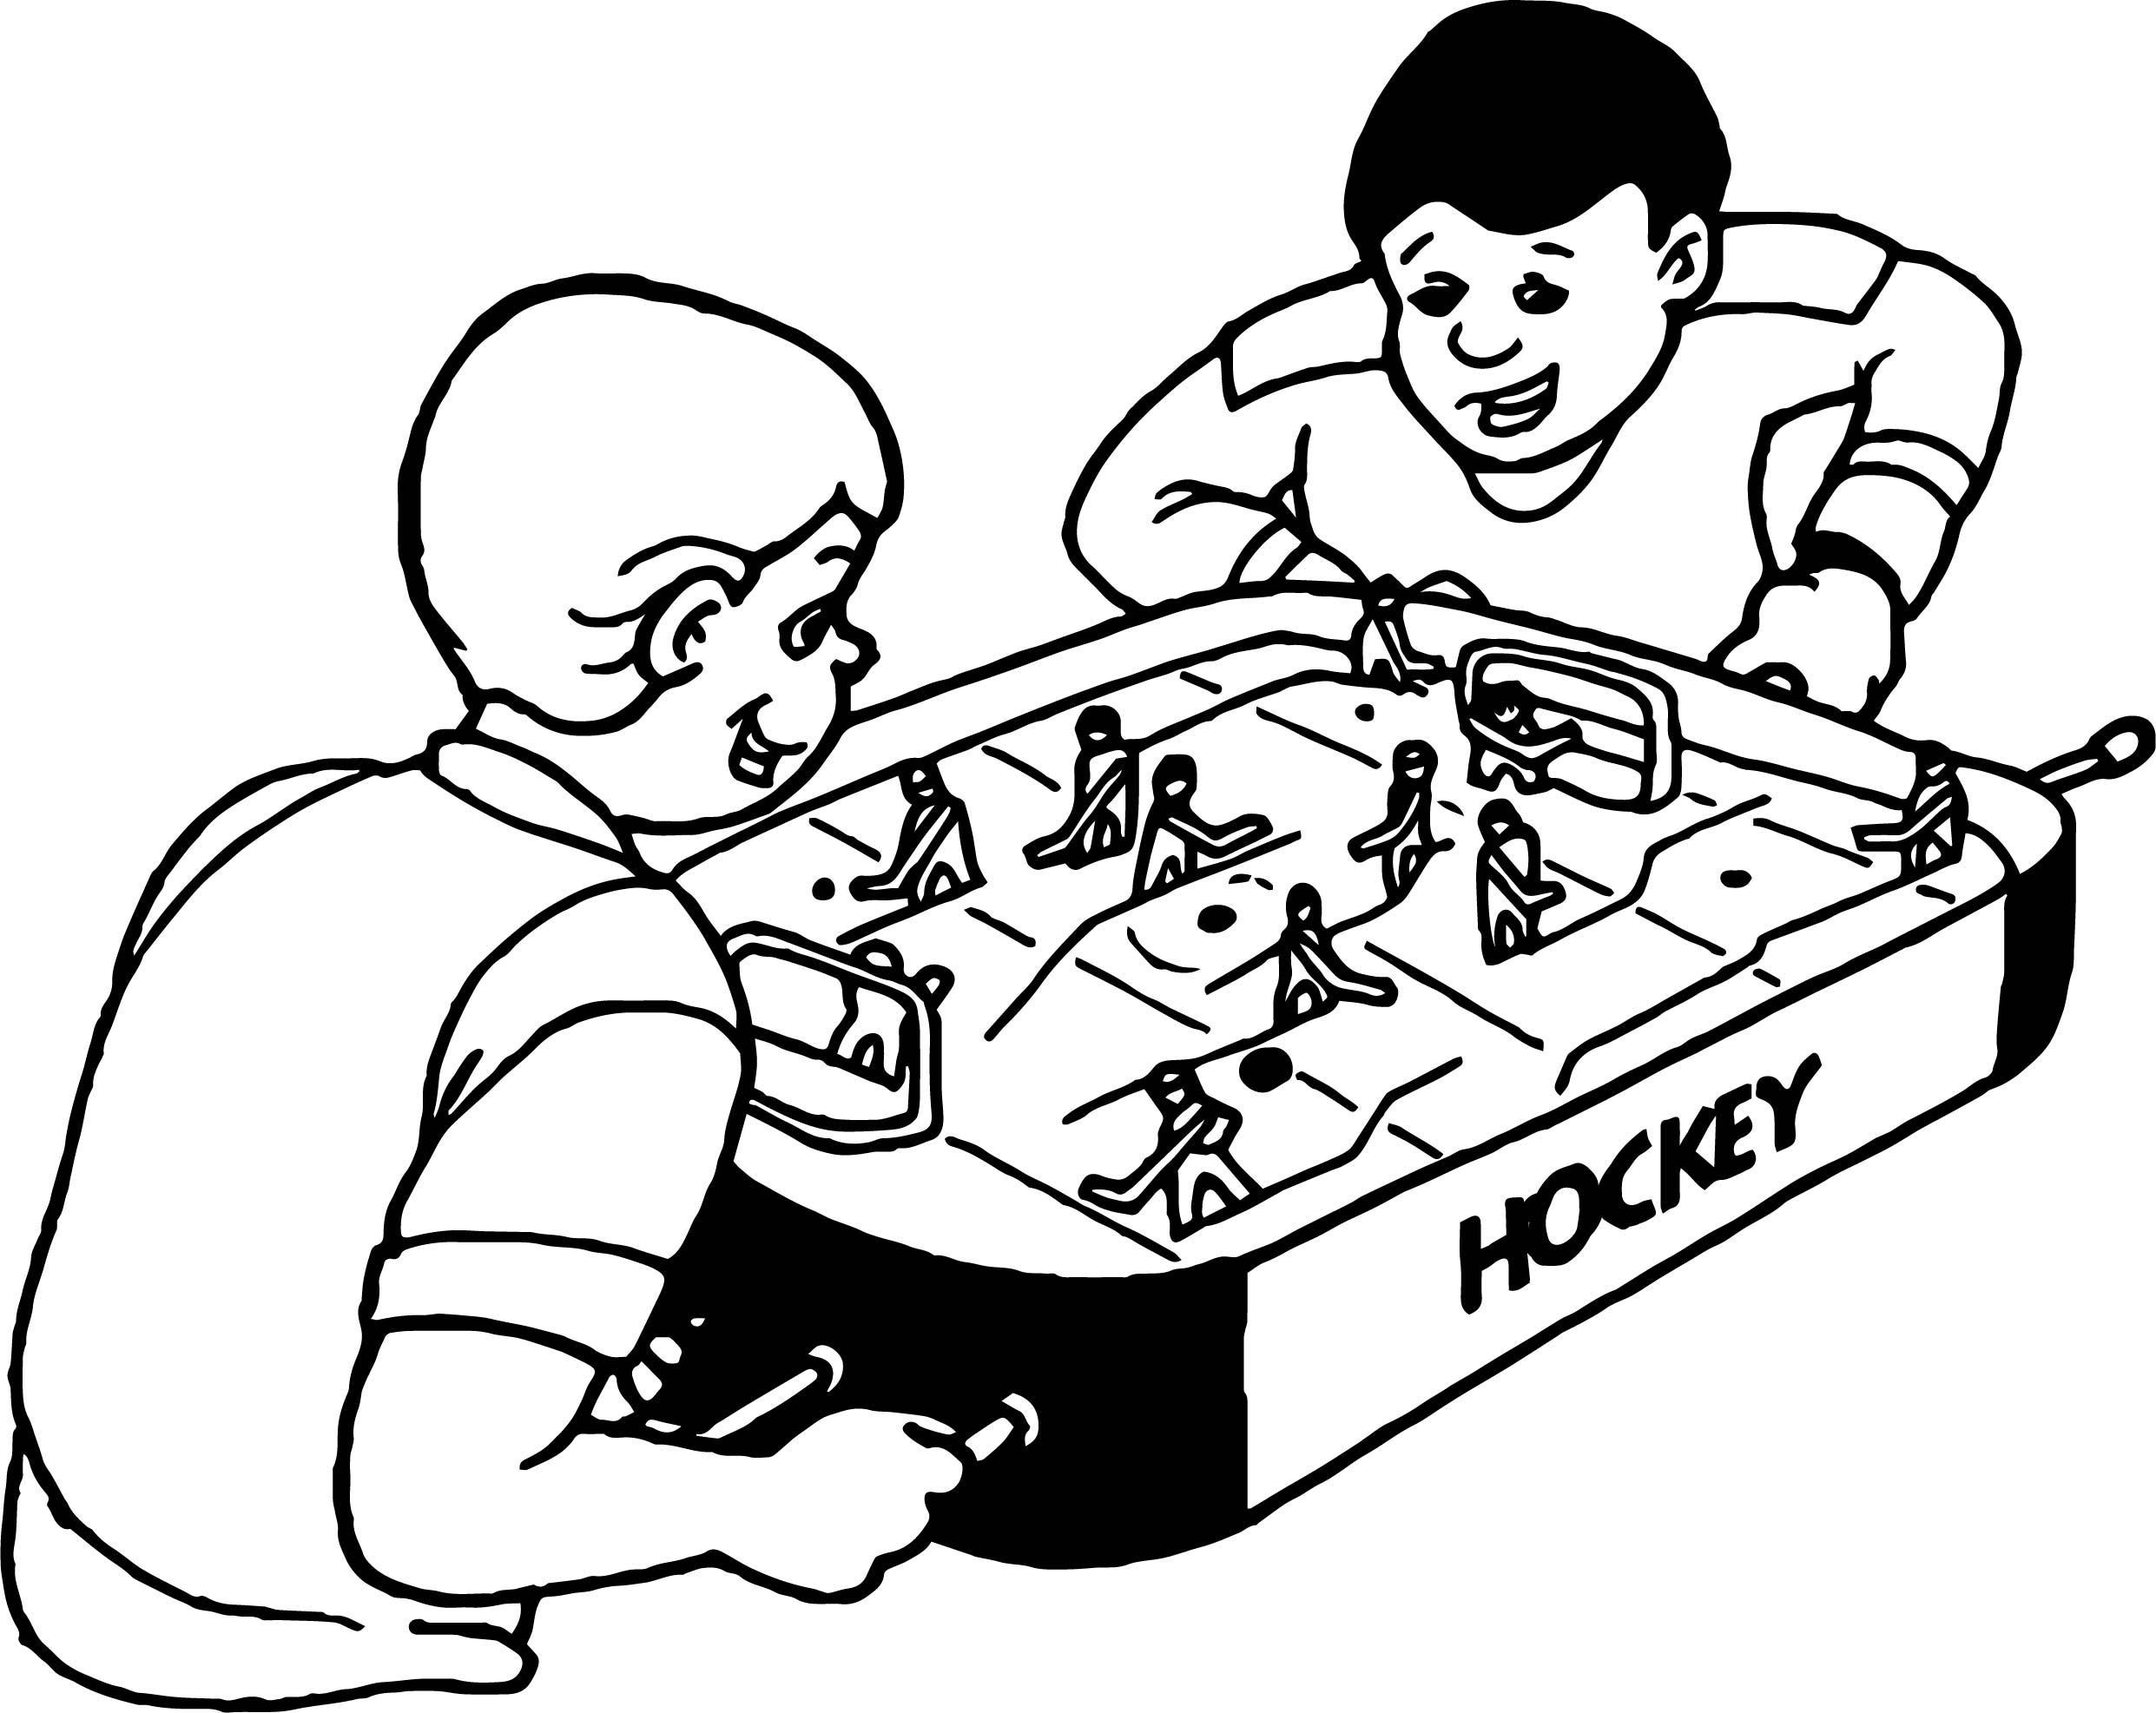 Boys Play Hockey Board Coloring Page Wecoloringpage